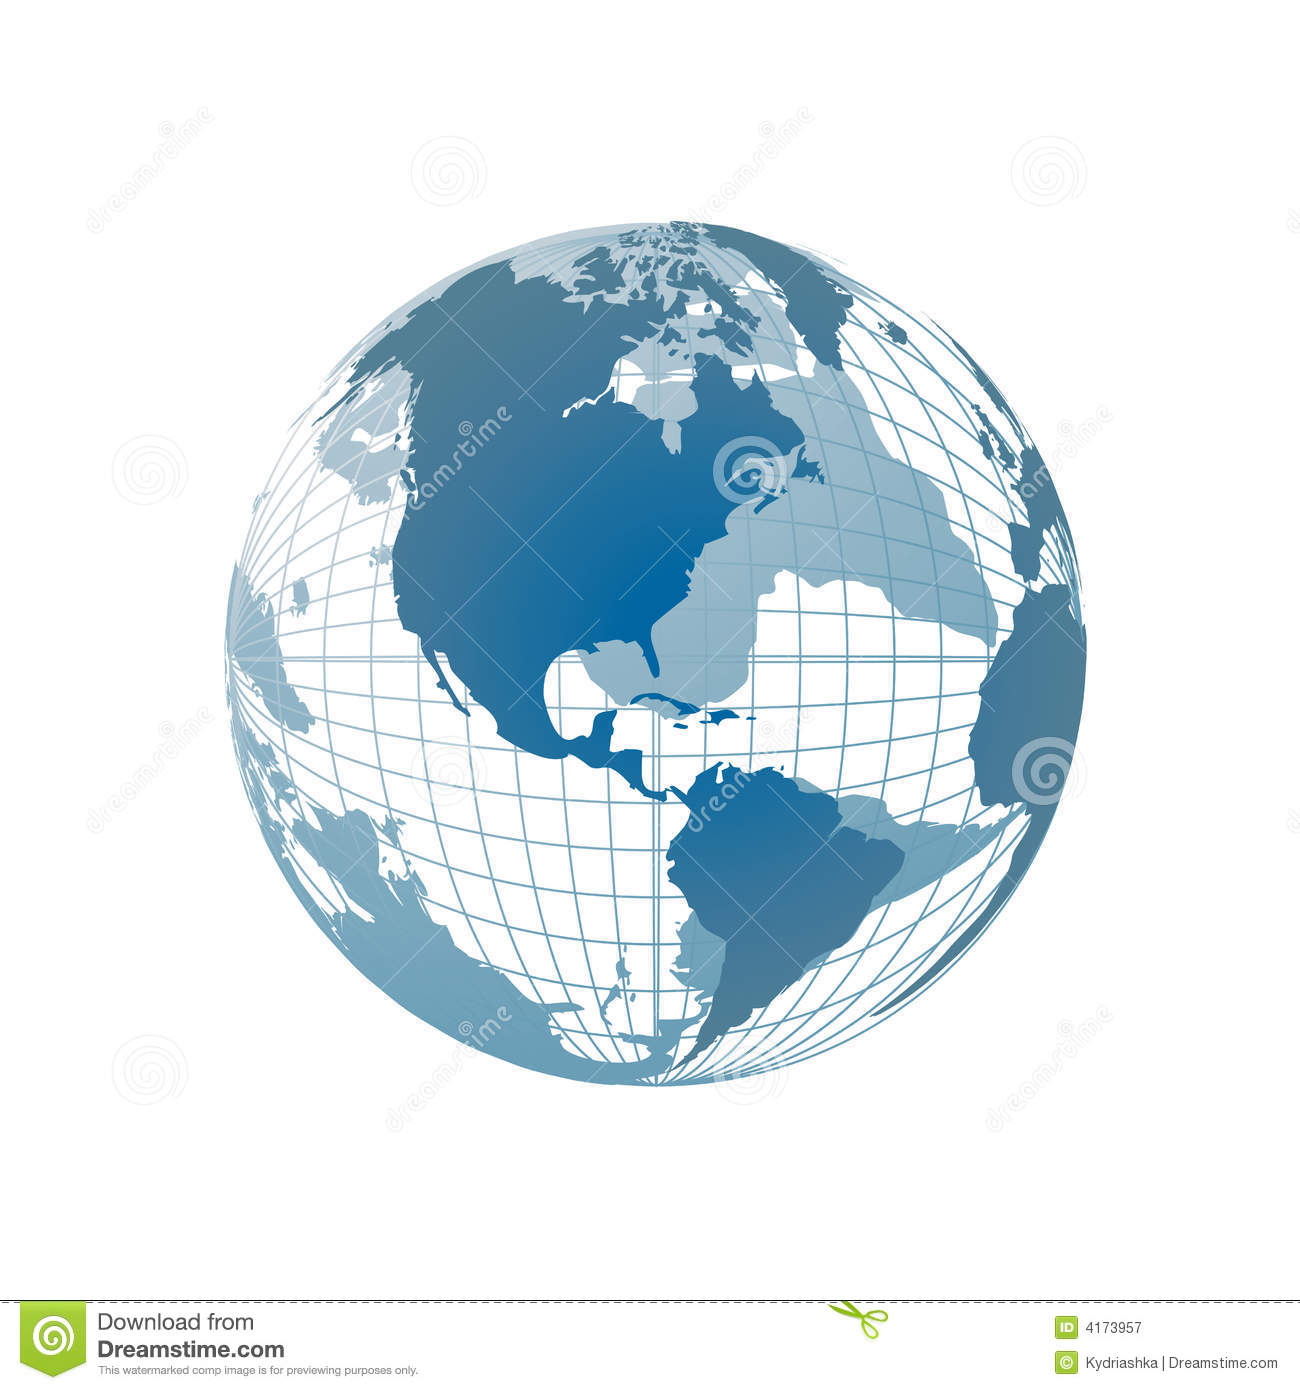 Map Of The World 3d.World Map 3d Globe Stock Vector Illustration Of Continents 4173957